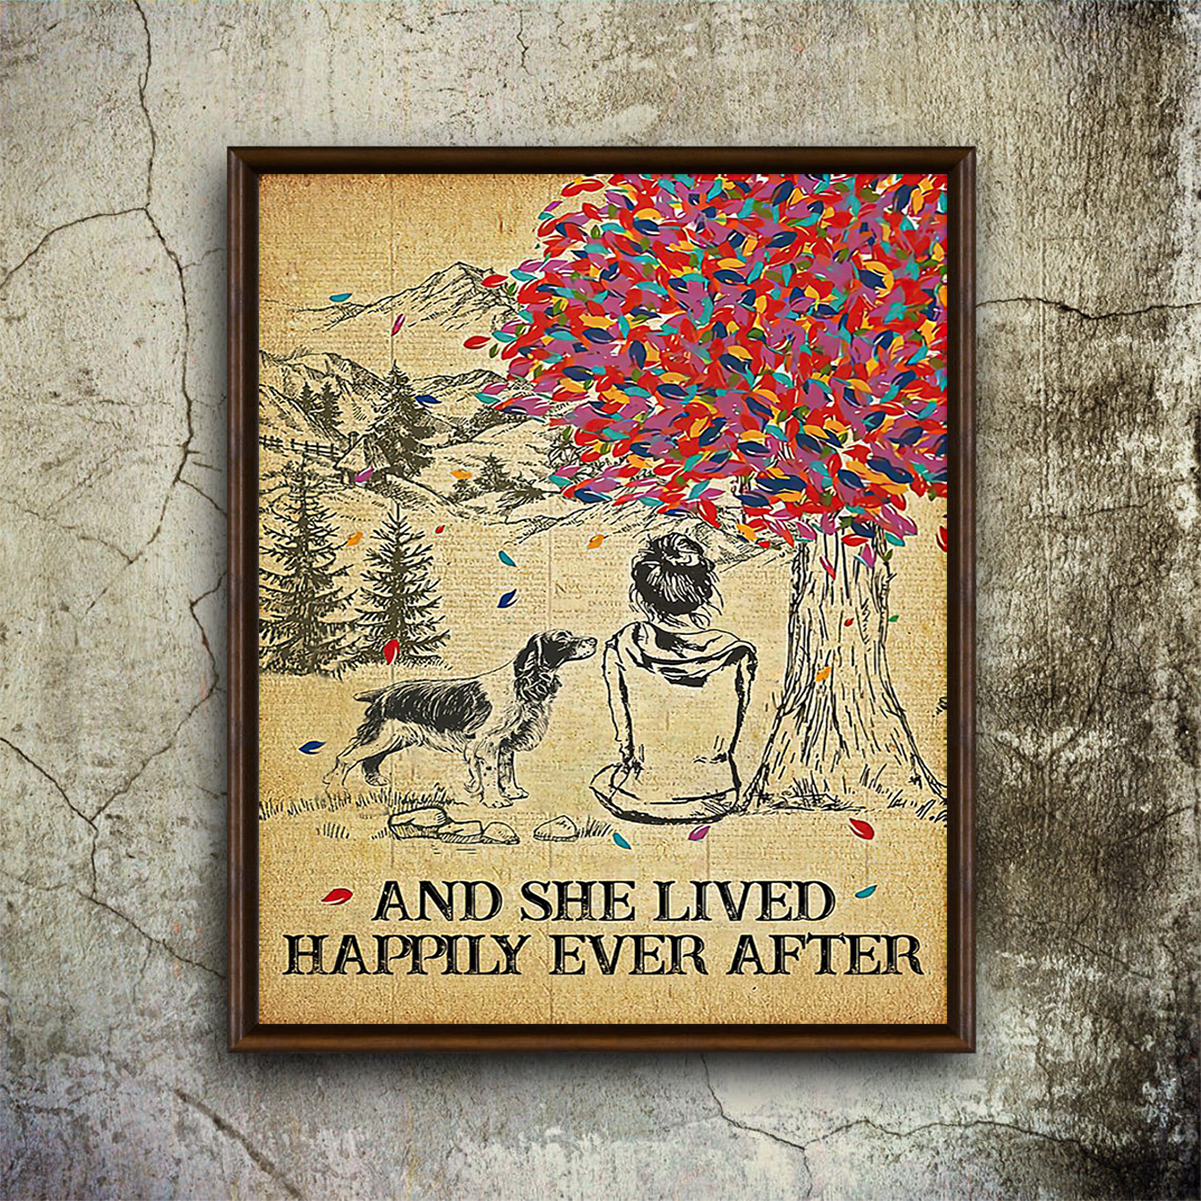 Springer spaniel and she lived happily ever after poster A1